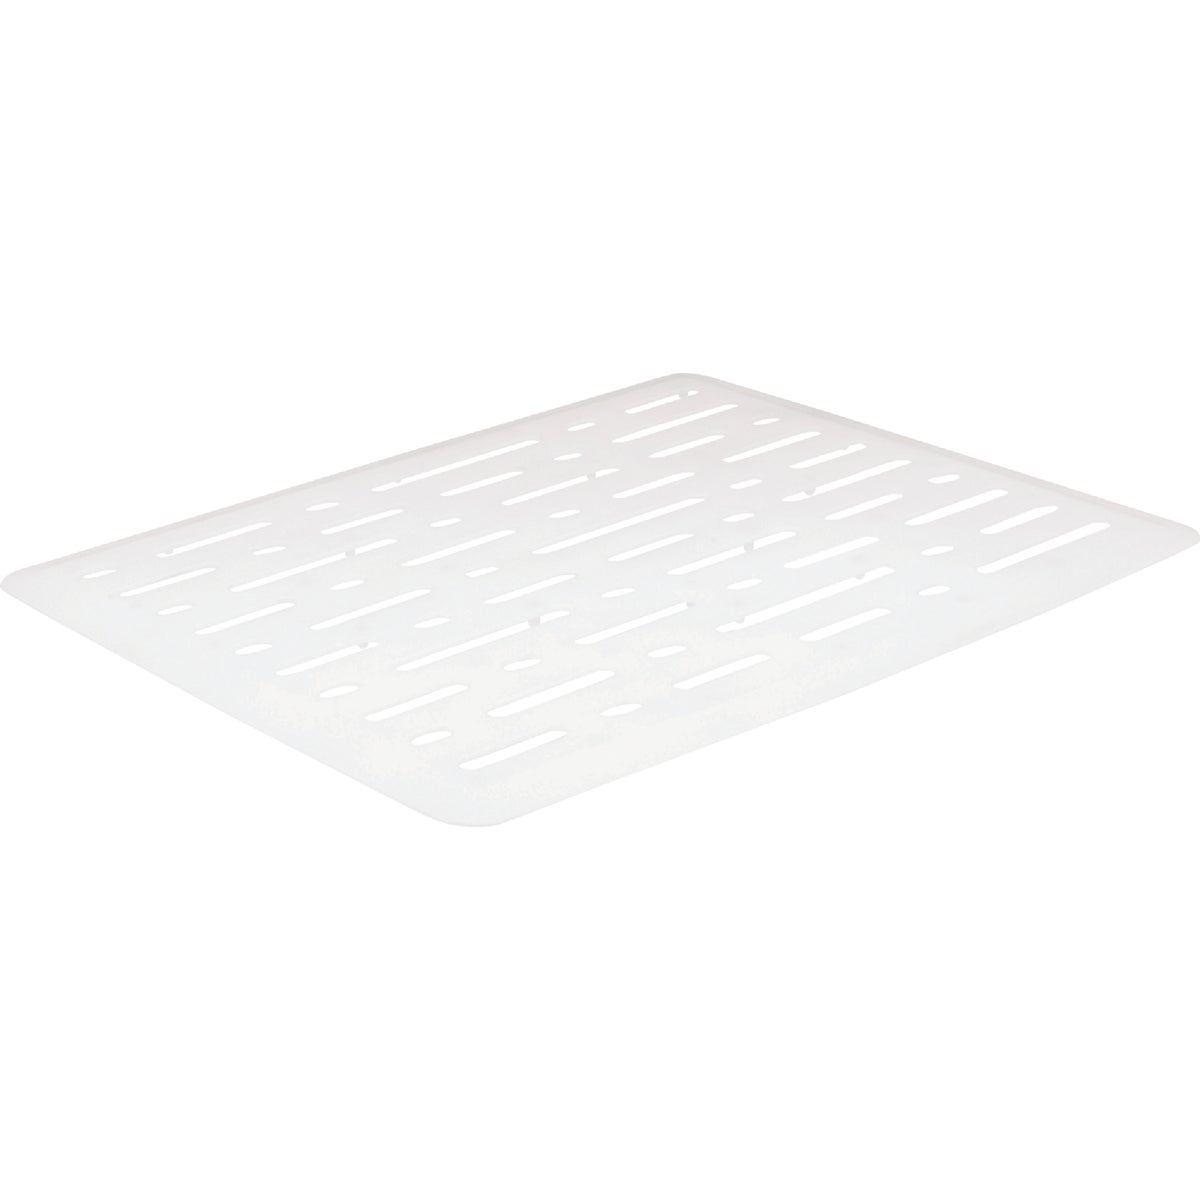 WHITE SMALL SINK MAT